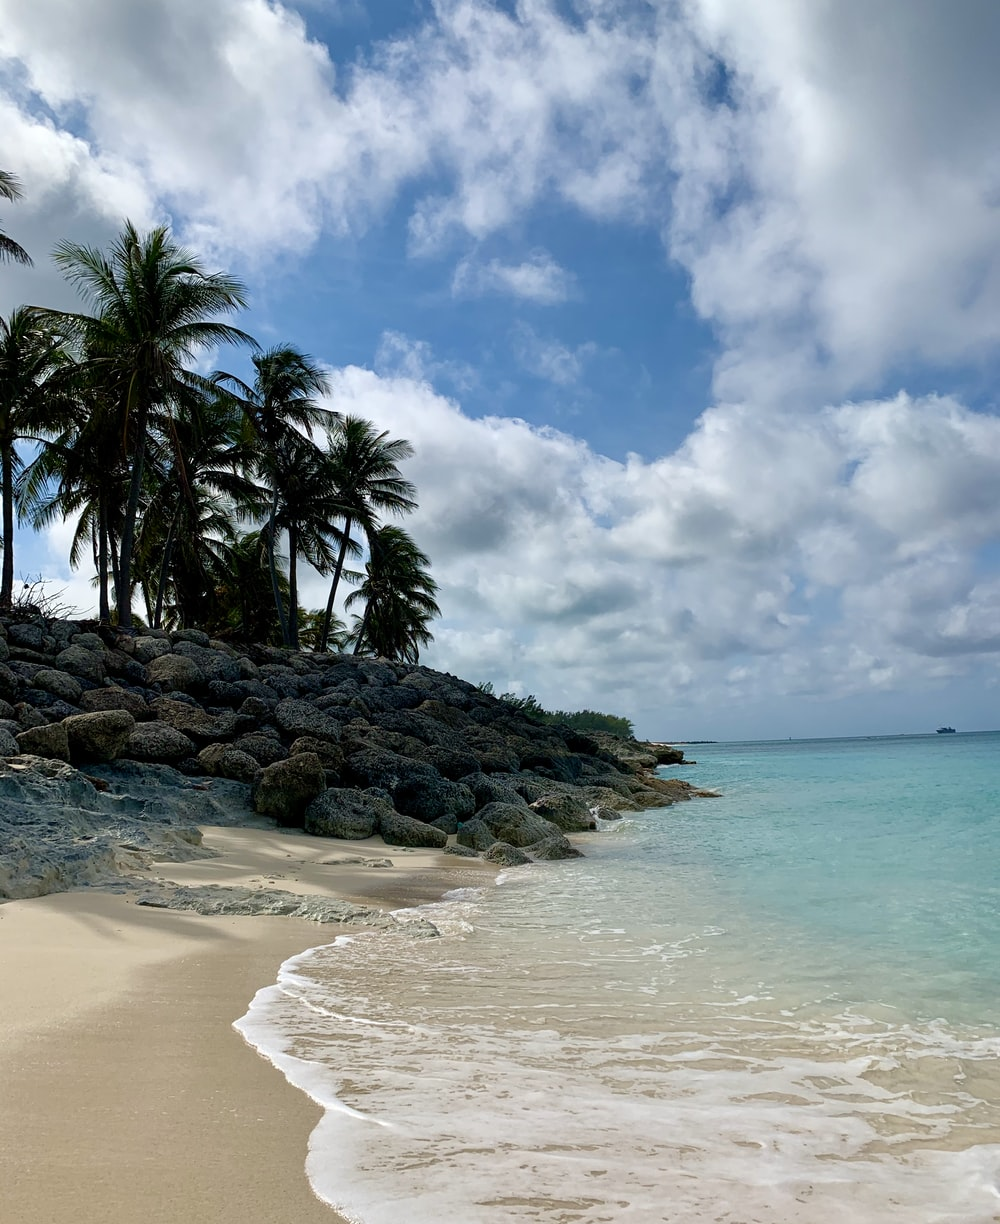 green palm trees on brown sand beach during daytime